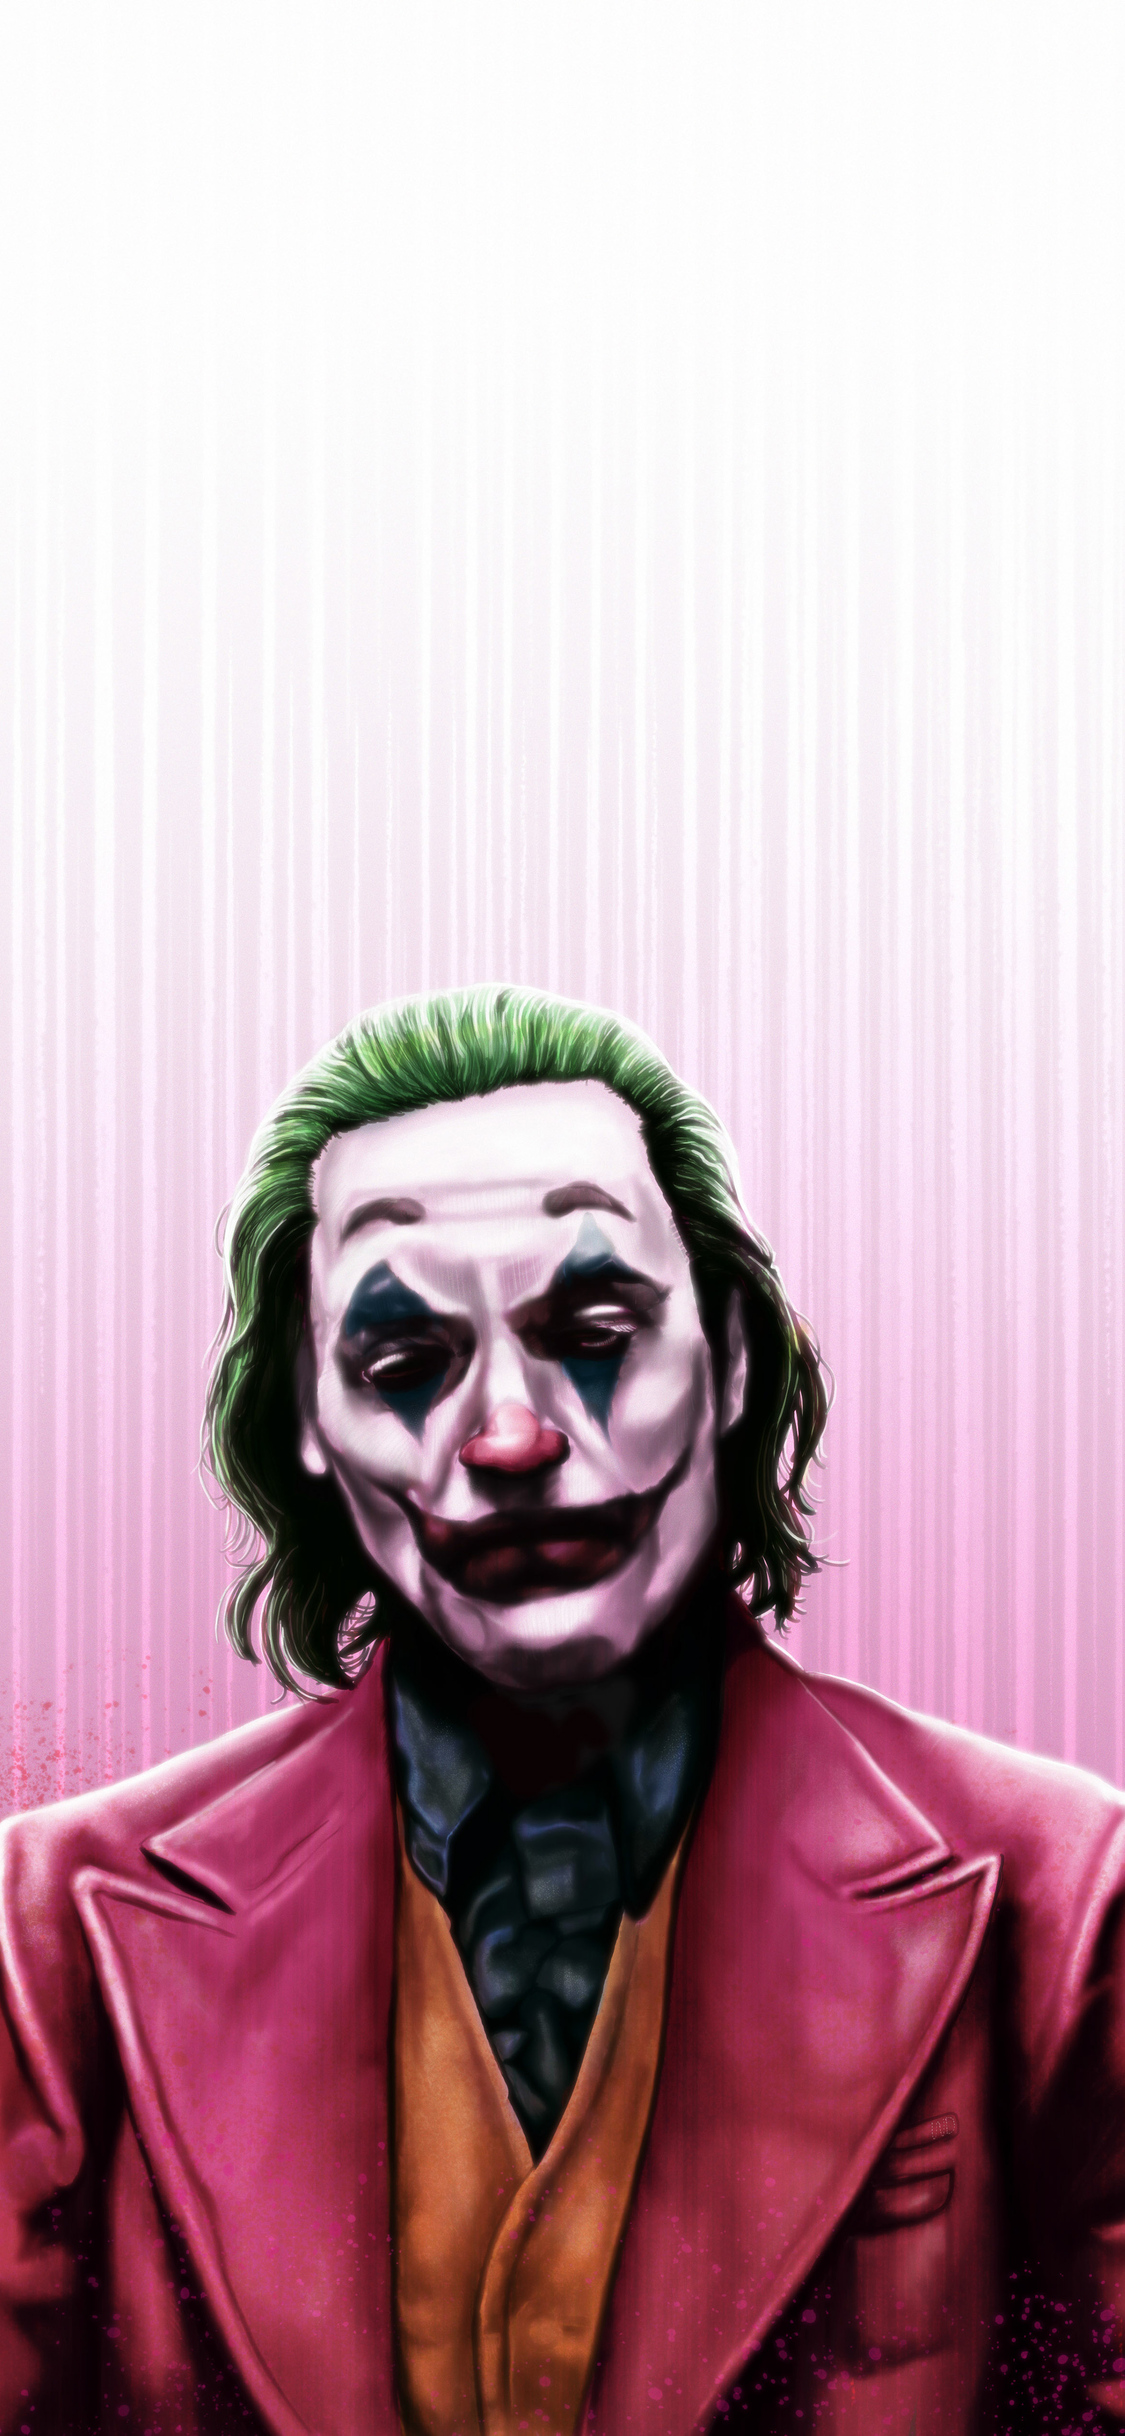 1125x2436 Joker Joaquin Phoenix 4k Art Iphone Xs Iphone 10